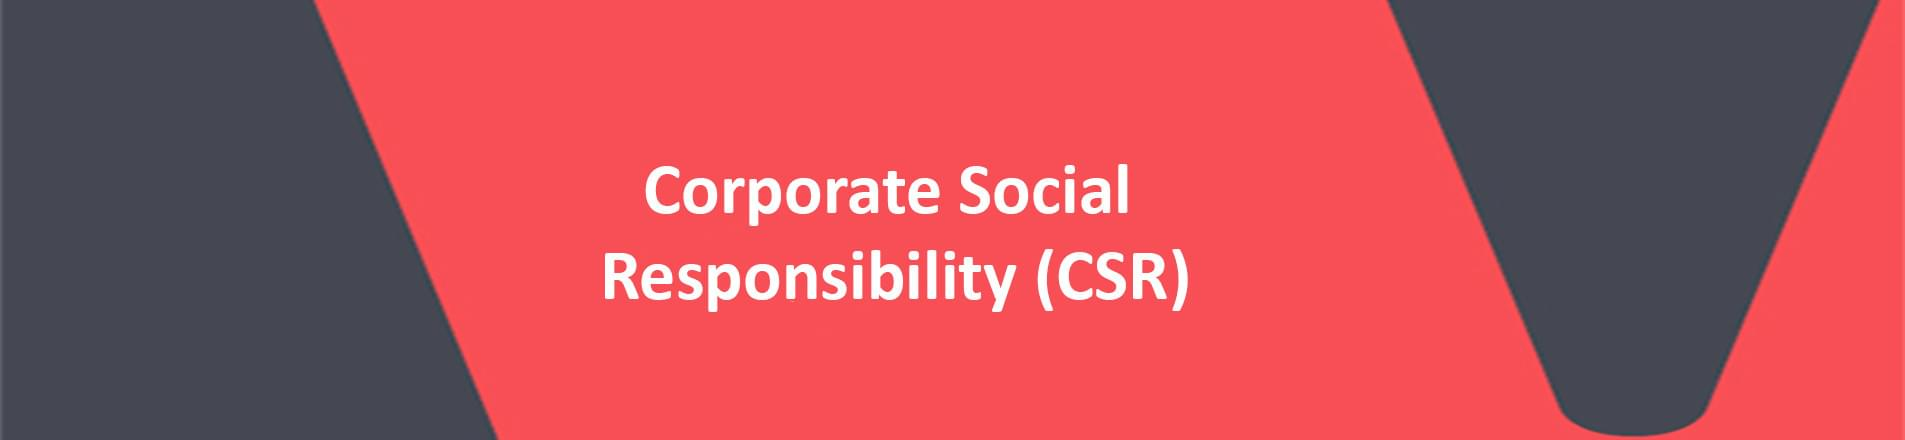 red banner with white text reading corporate social responsibility (CSR)